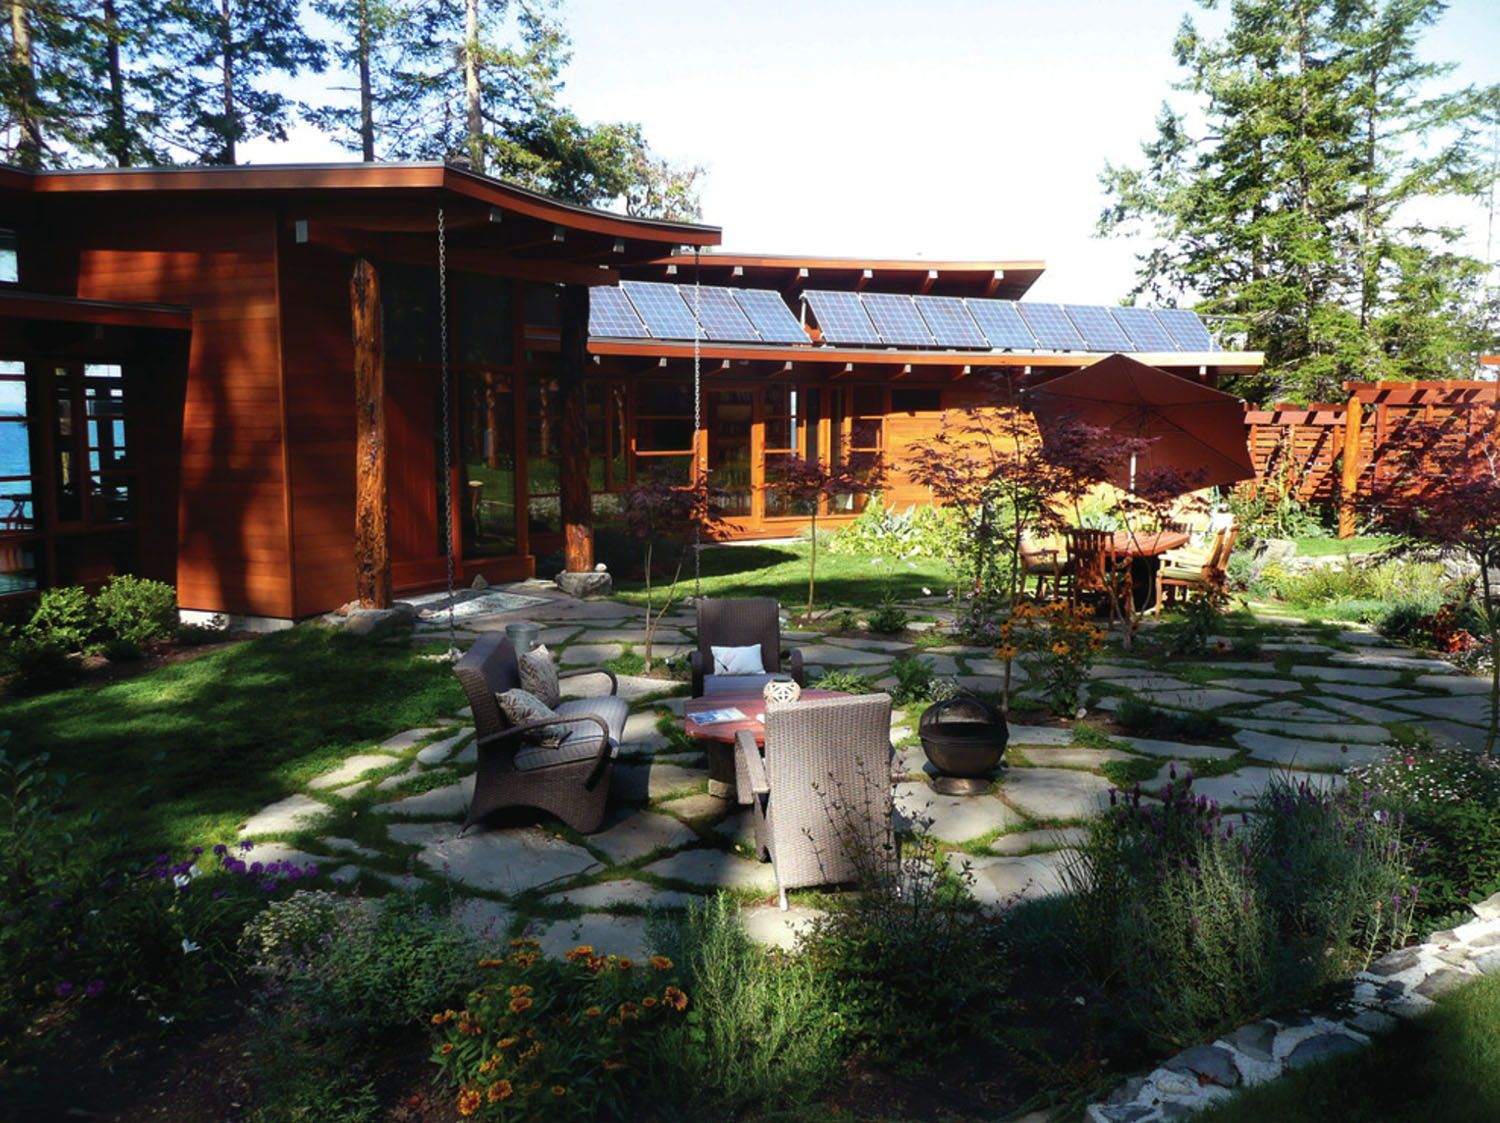 Photo of Off-grid place of abode designed for ebook fans at the Gulf Islands